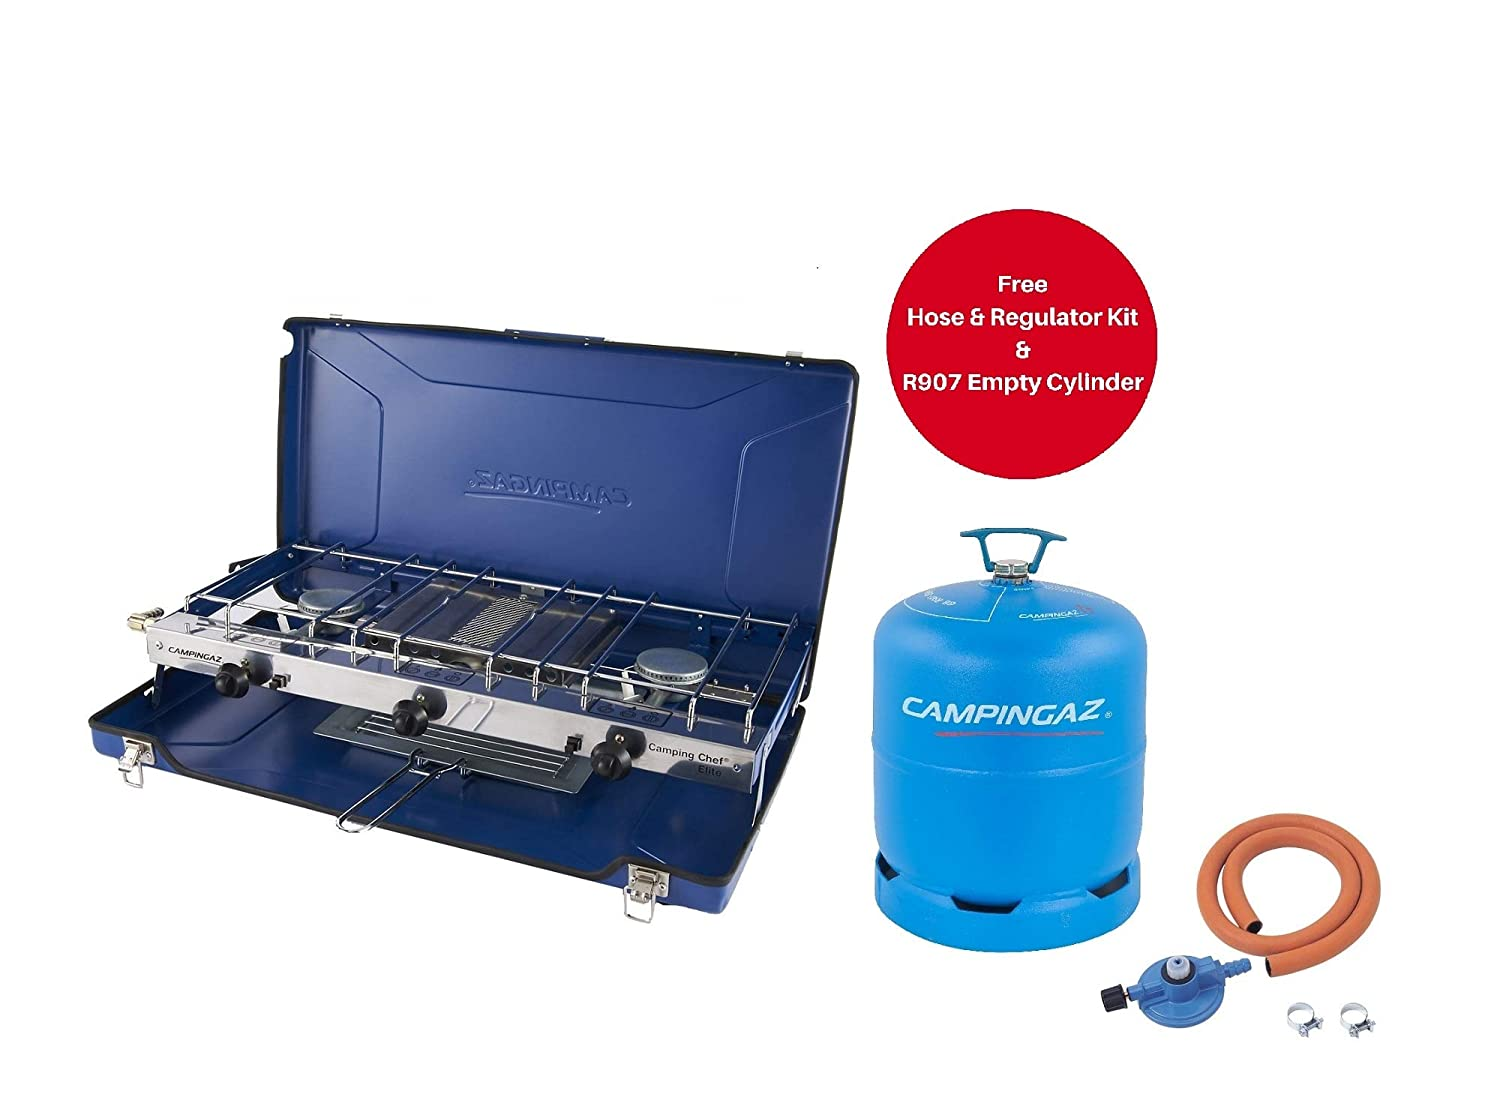 Free Campingaz Hose /& Regulator Kit and R907 Empty Cylinder Trackpack Limited Campingaz Chef Folding Double Burner and Grill Blue